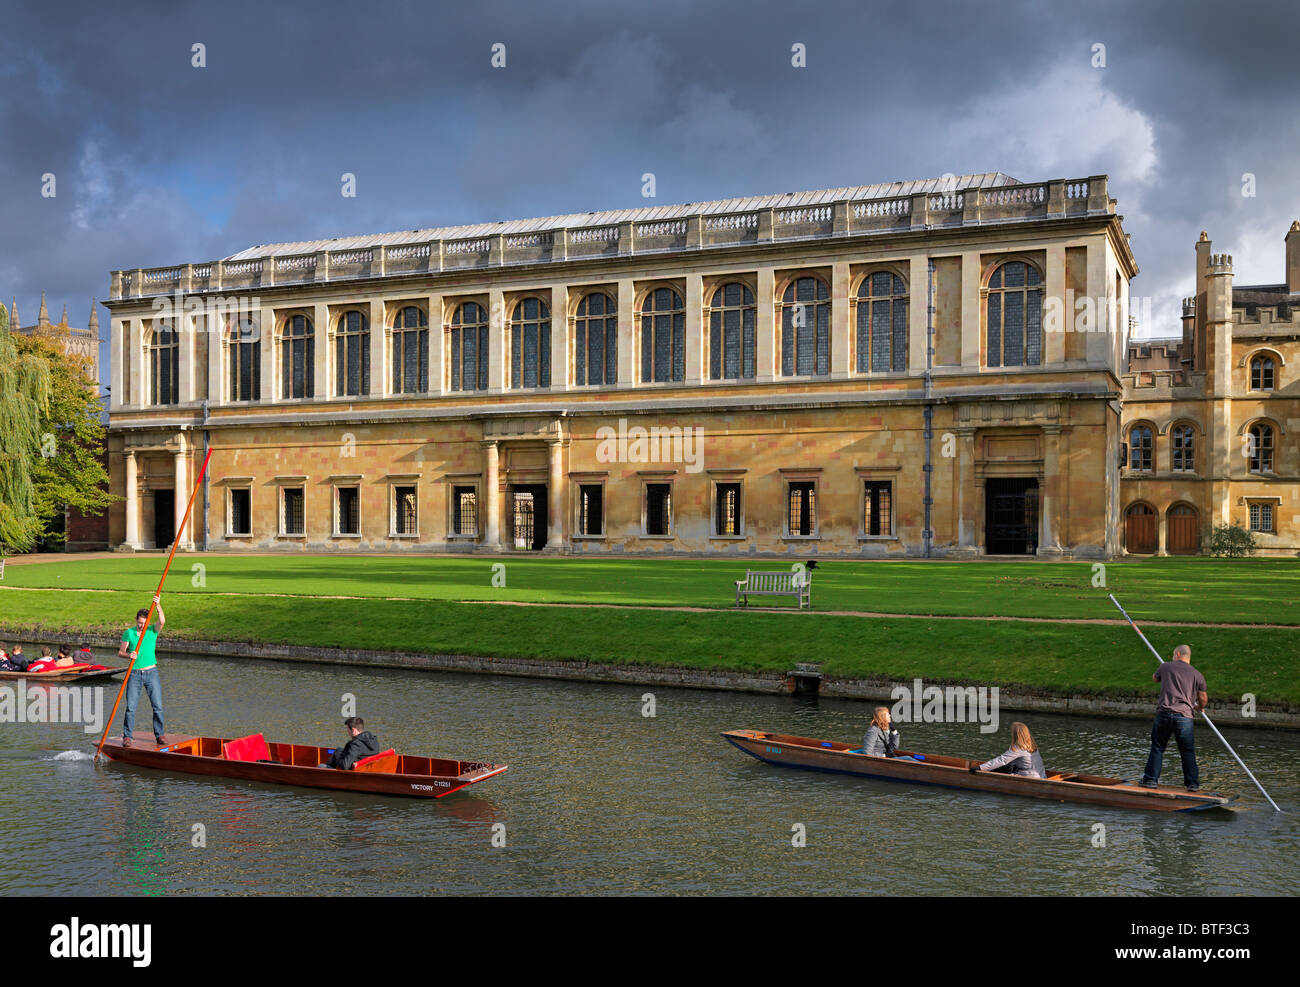 The Wren Library, Trinity College Cambridge, with punting in front on the river Cam - Stock Image